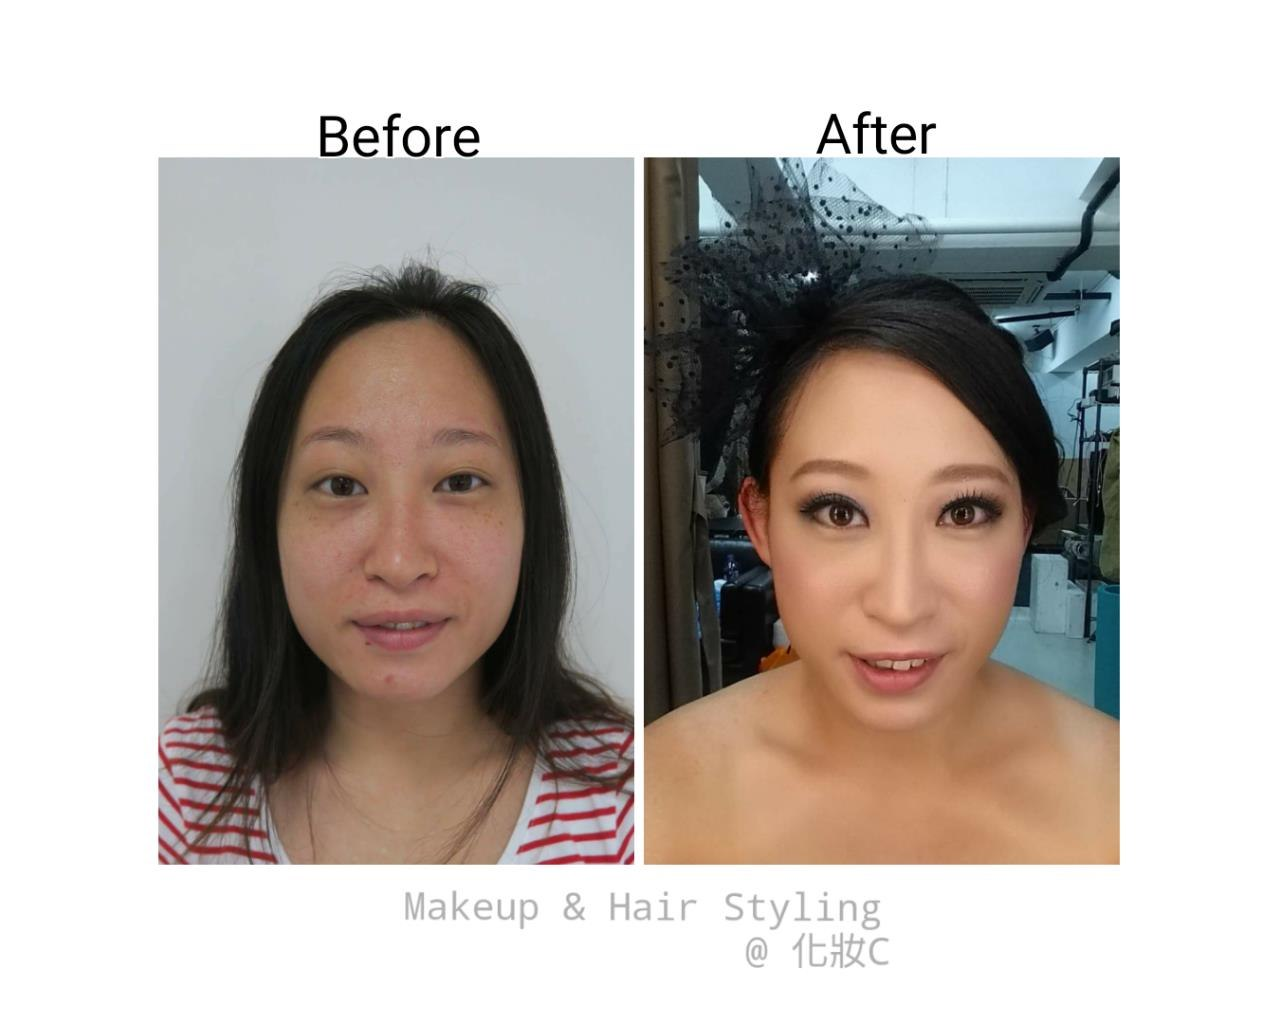 Before After Makeup & Hair Styling @化妝C,eyebrow,face,skin,cheek,nose